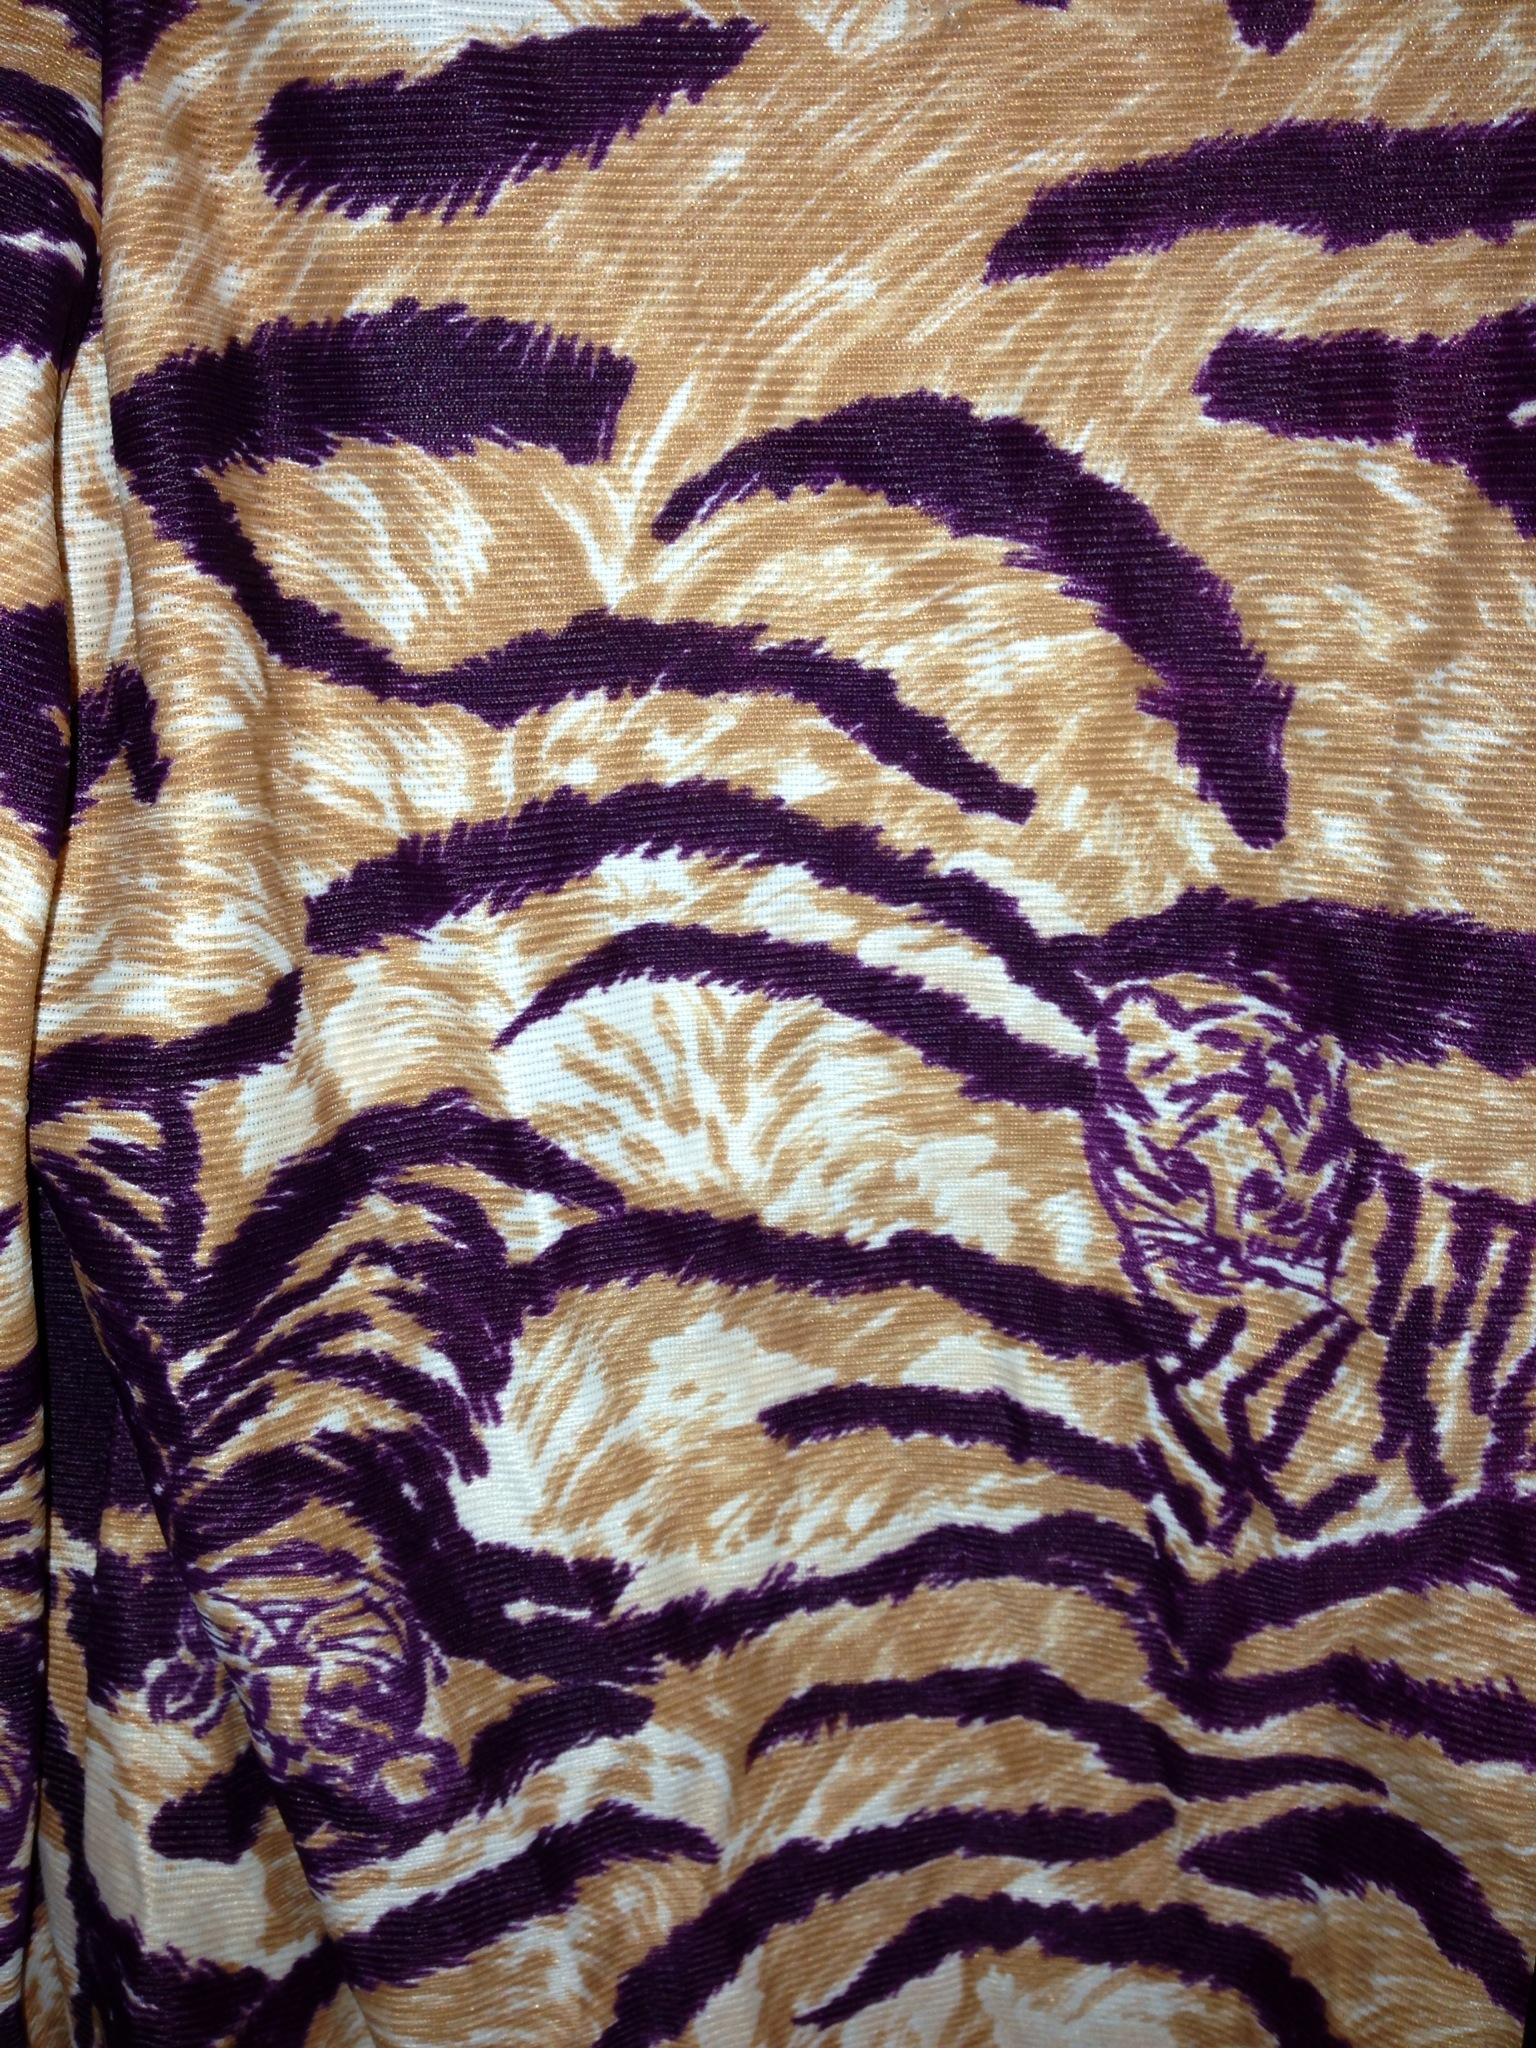 I've been seeing some animals within skin prints. I guess it isn't that new as this is a 70's shirt.